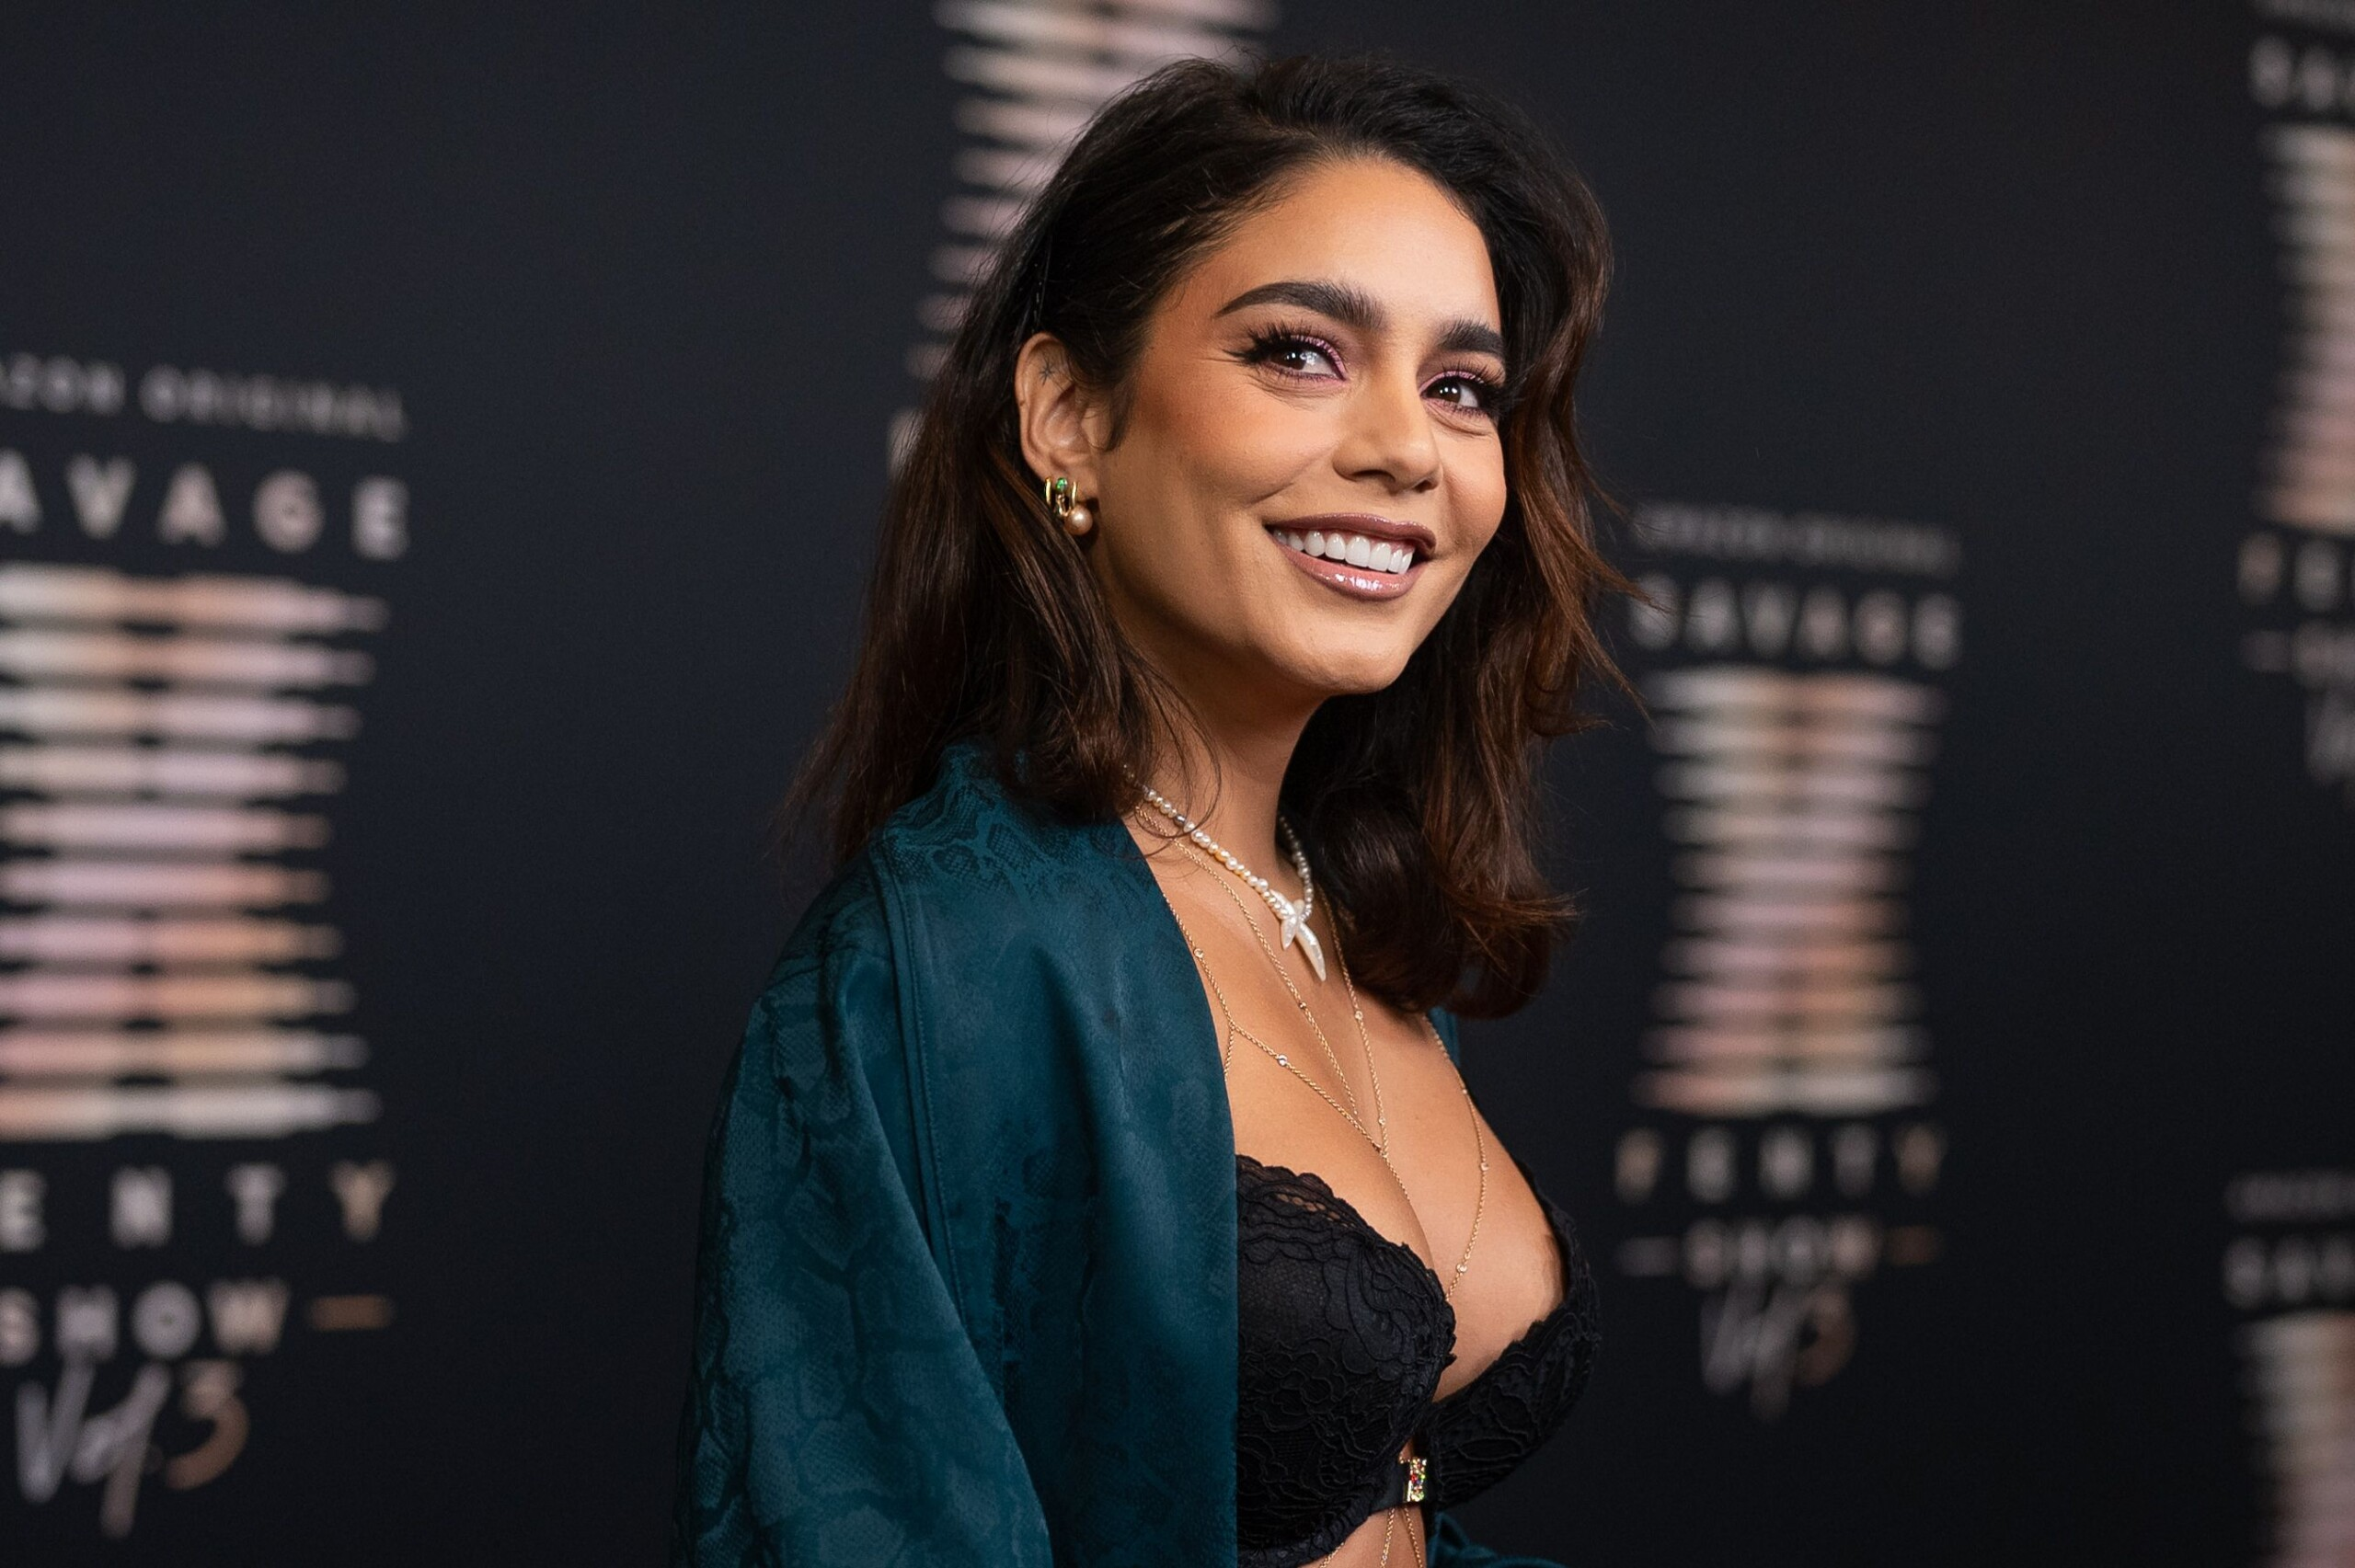 All that star from Tick Tick Boom Vanessa Hudgens eats scaled